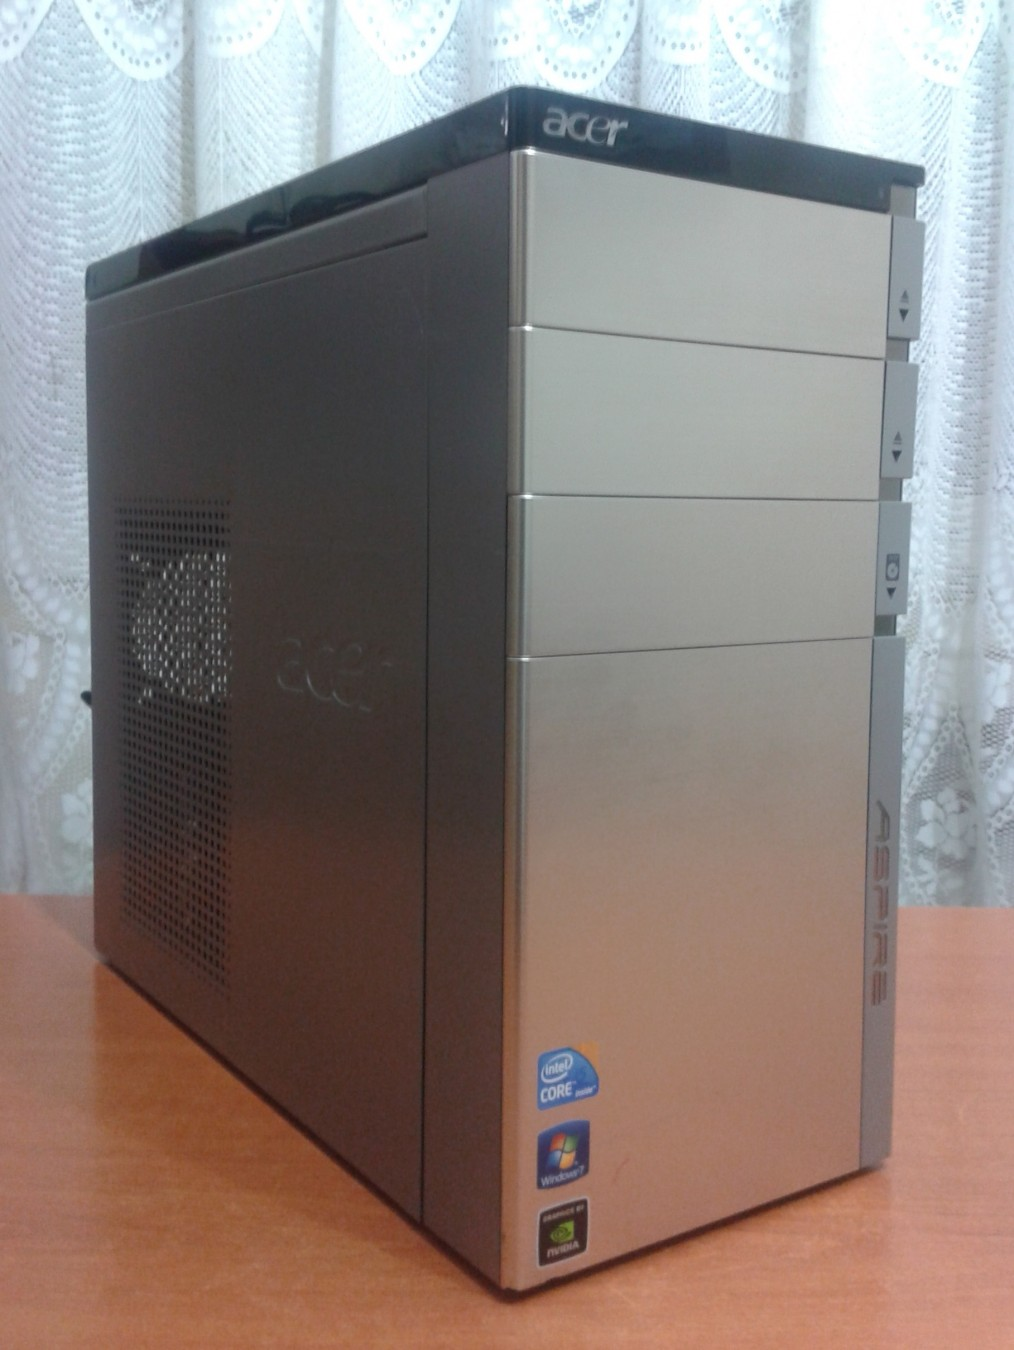 Pc Acer Aspire M5910 Intel Core I5 3 2ghz   8gb   1tb